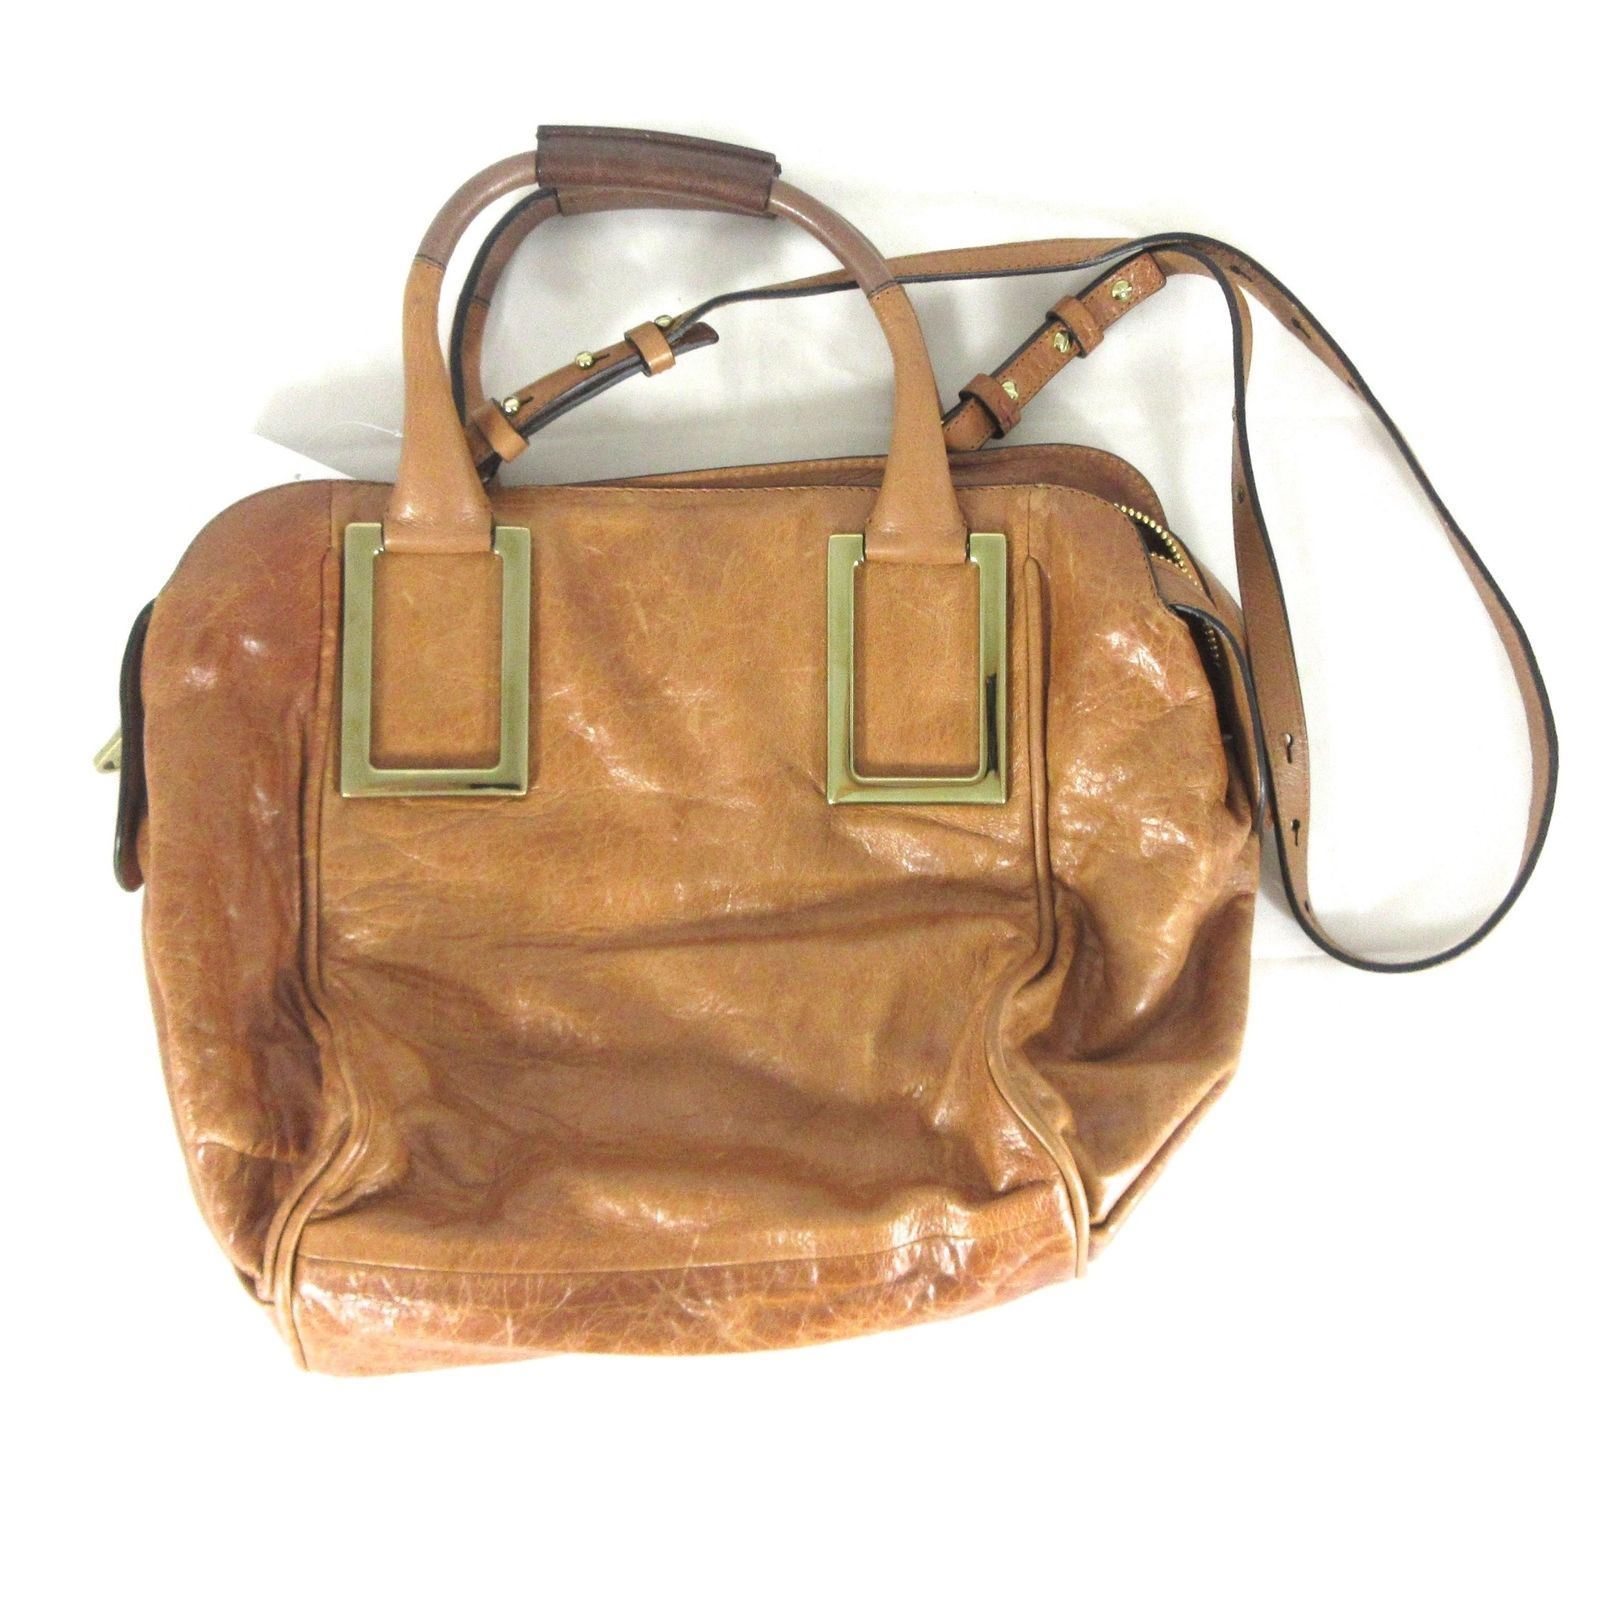 CHLOE Distressed Whiskey Leather  1550 ETHEL and 50 similar items 573fe38706cee